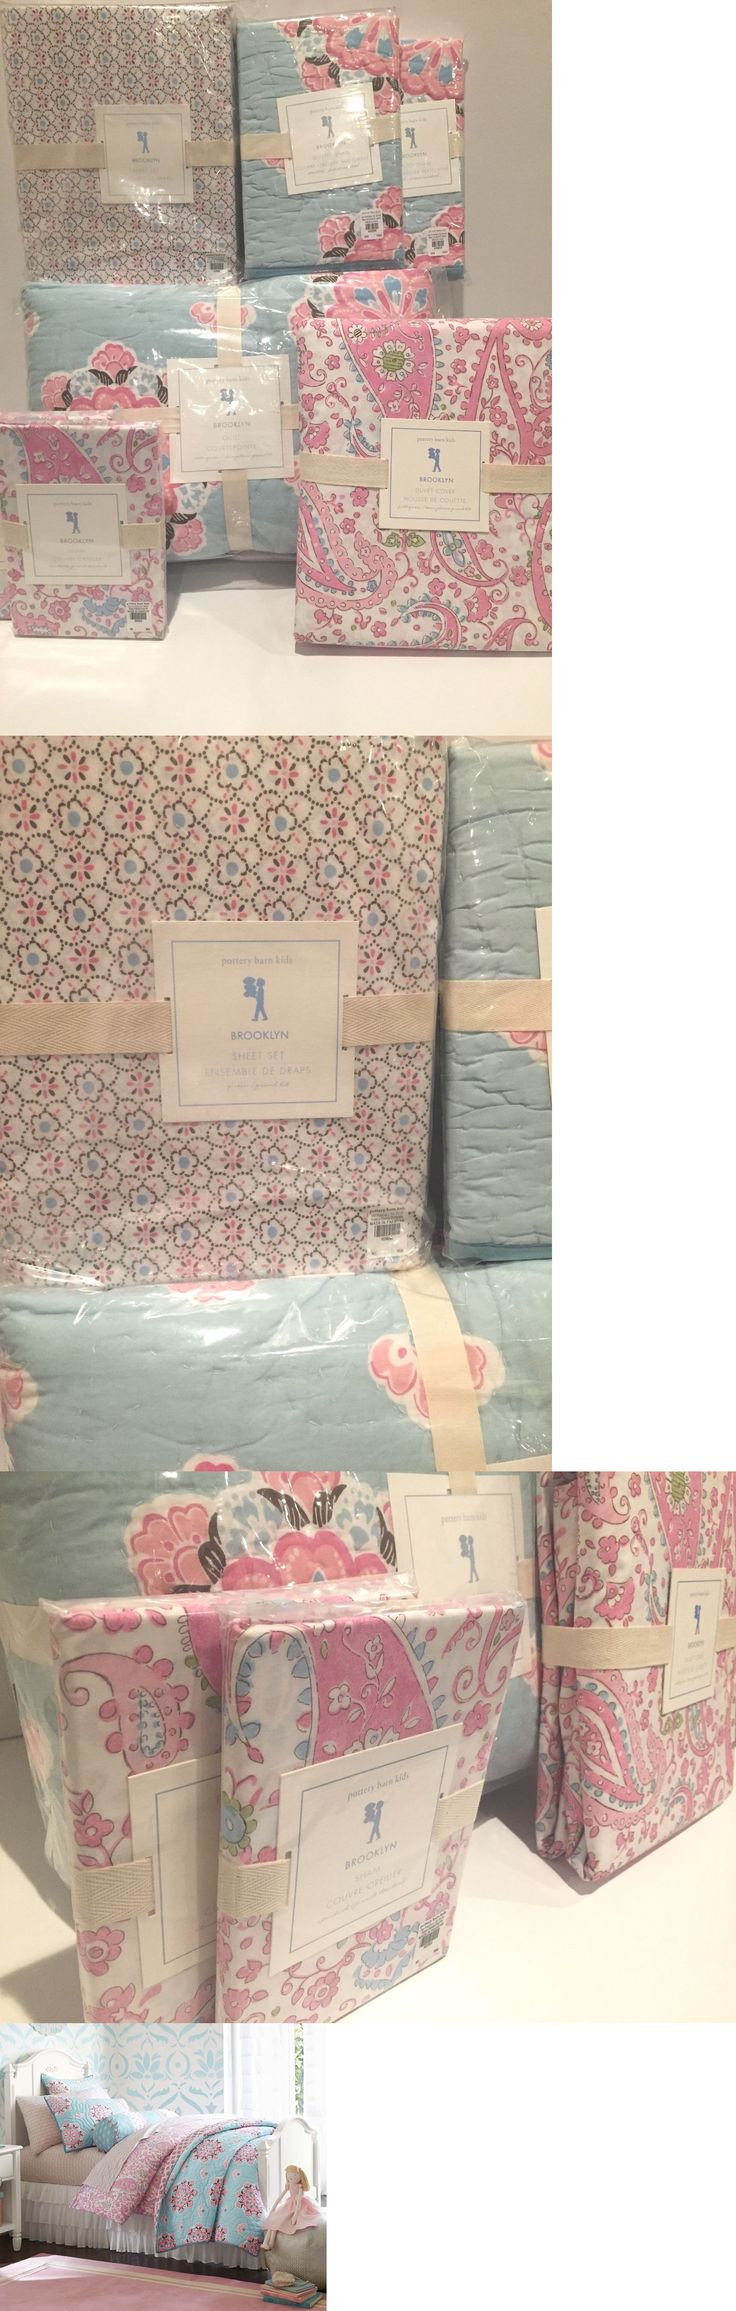 Kids Bedding: New Pottery Barn Kids Brooklyn Full/Queen Quilt, Shams, Sheets, Duvet, 10Pc Set BUY IT NOW ONLY: $399.95